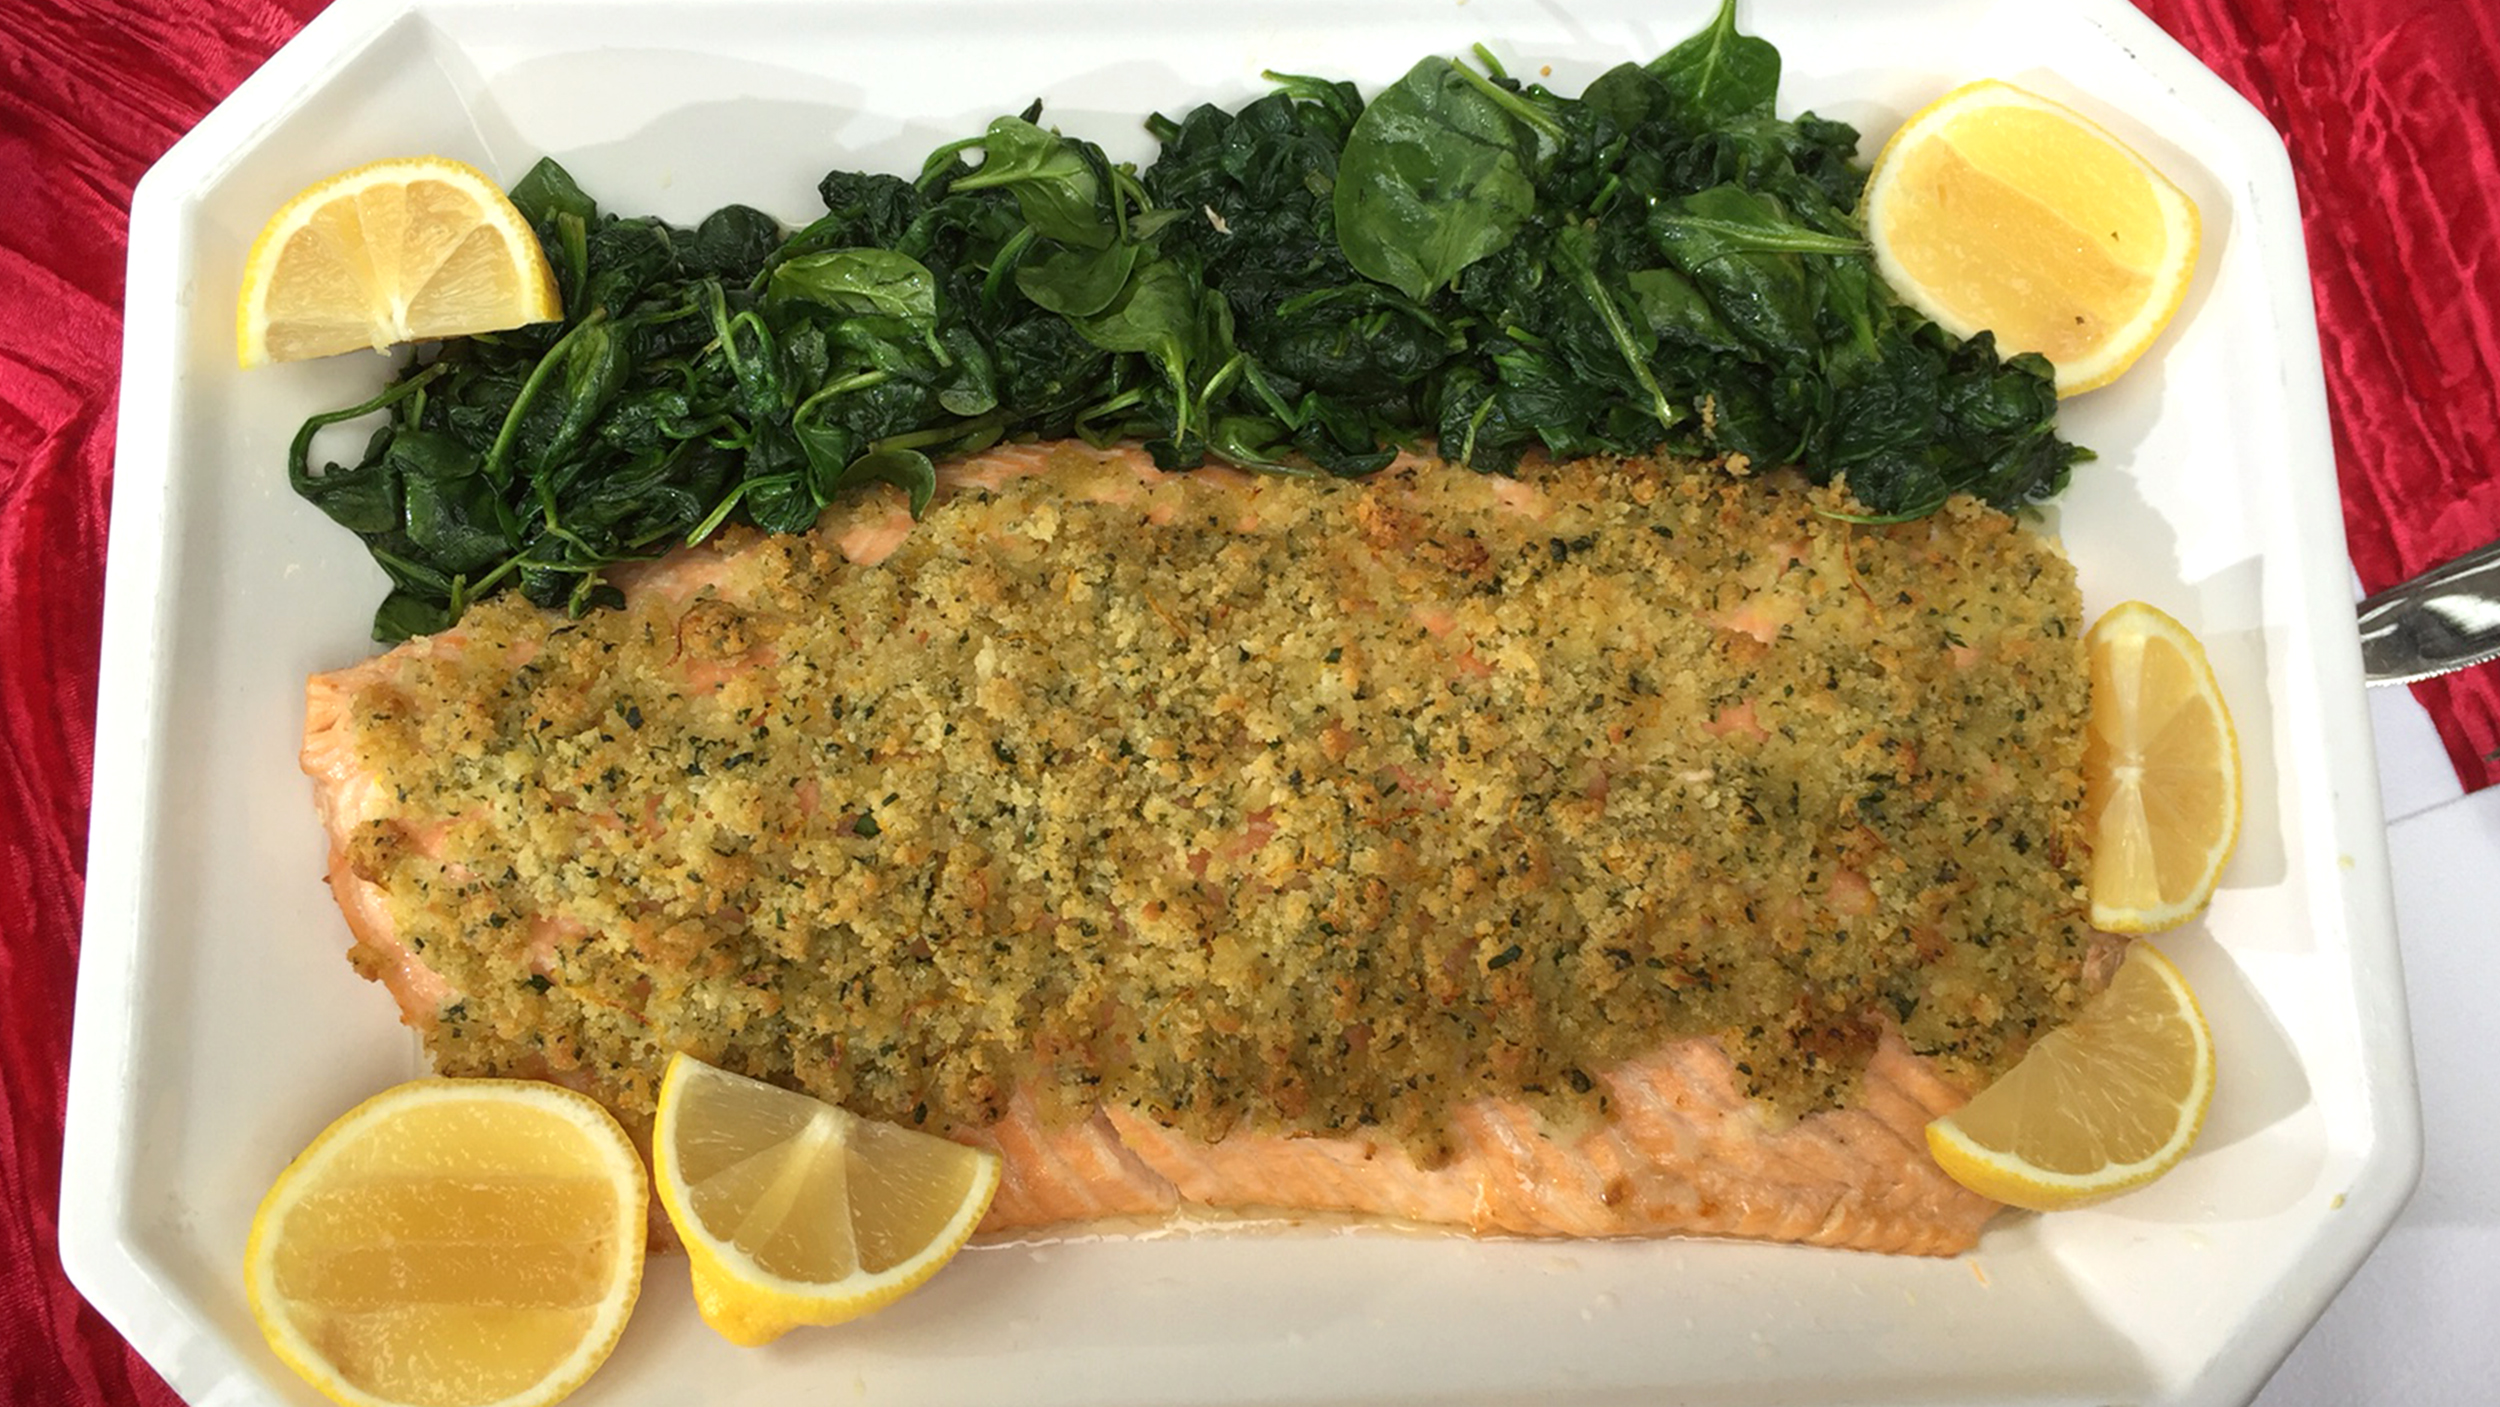 Fast and Easy Lemon-Crusted Salmon with Garlic Spinach - TODAY.com